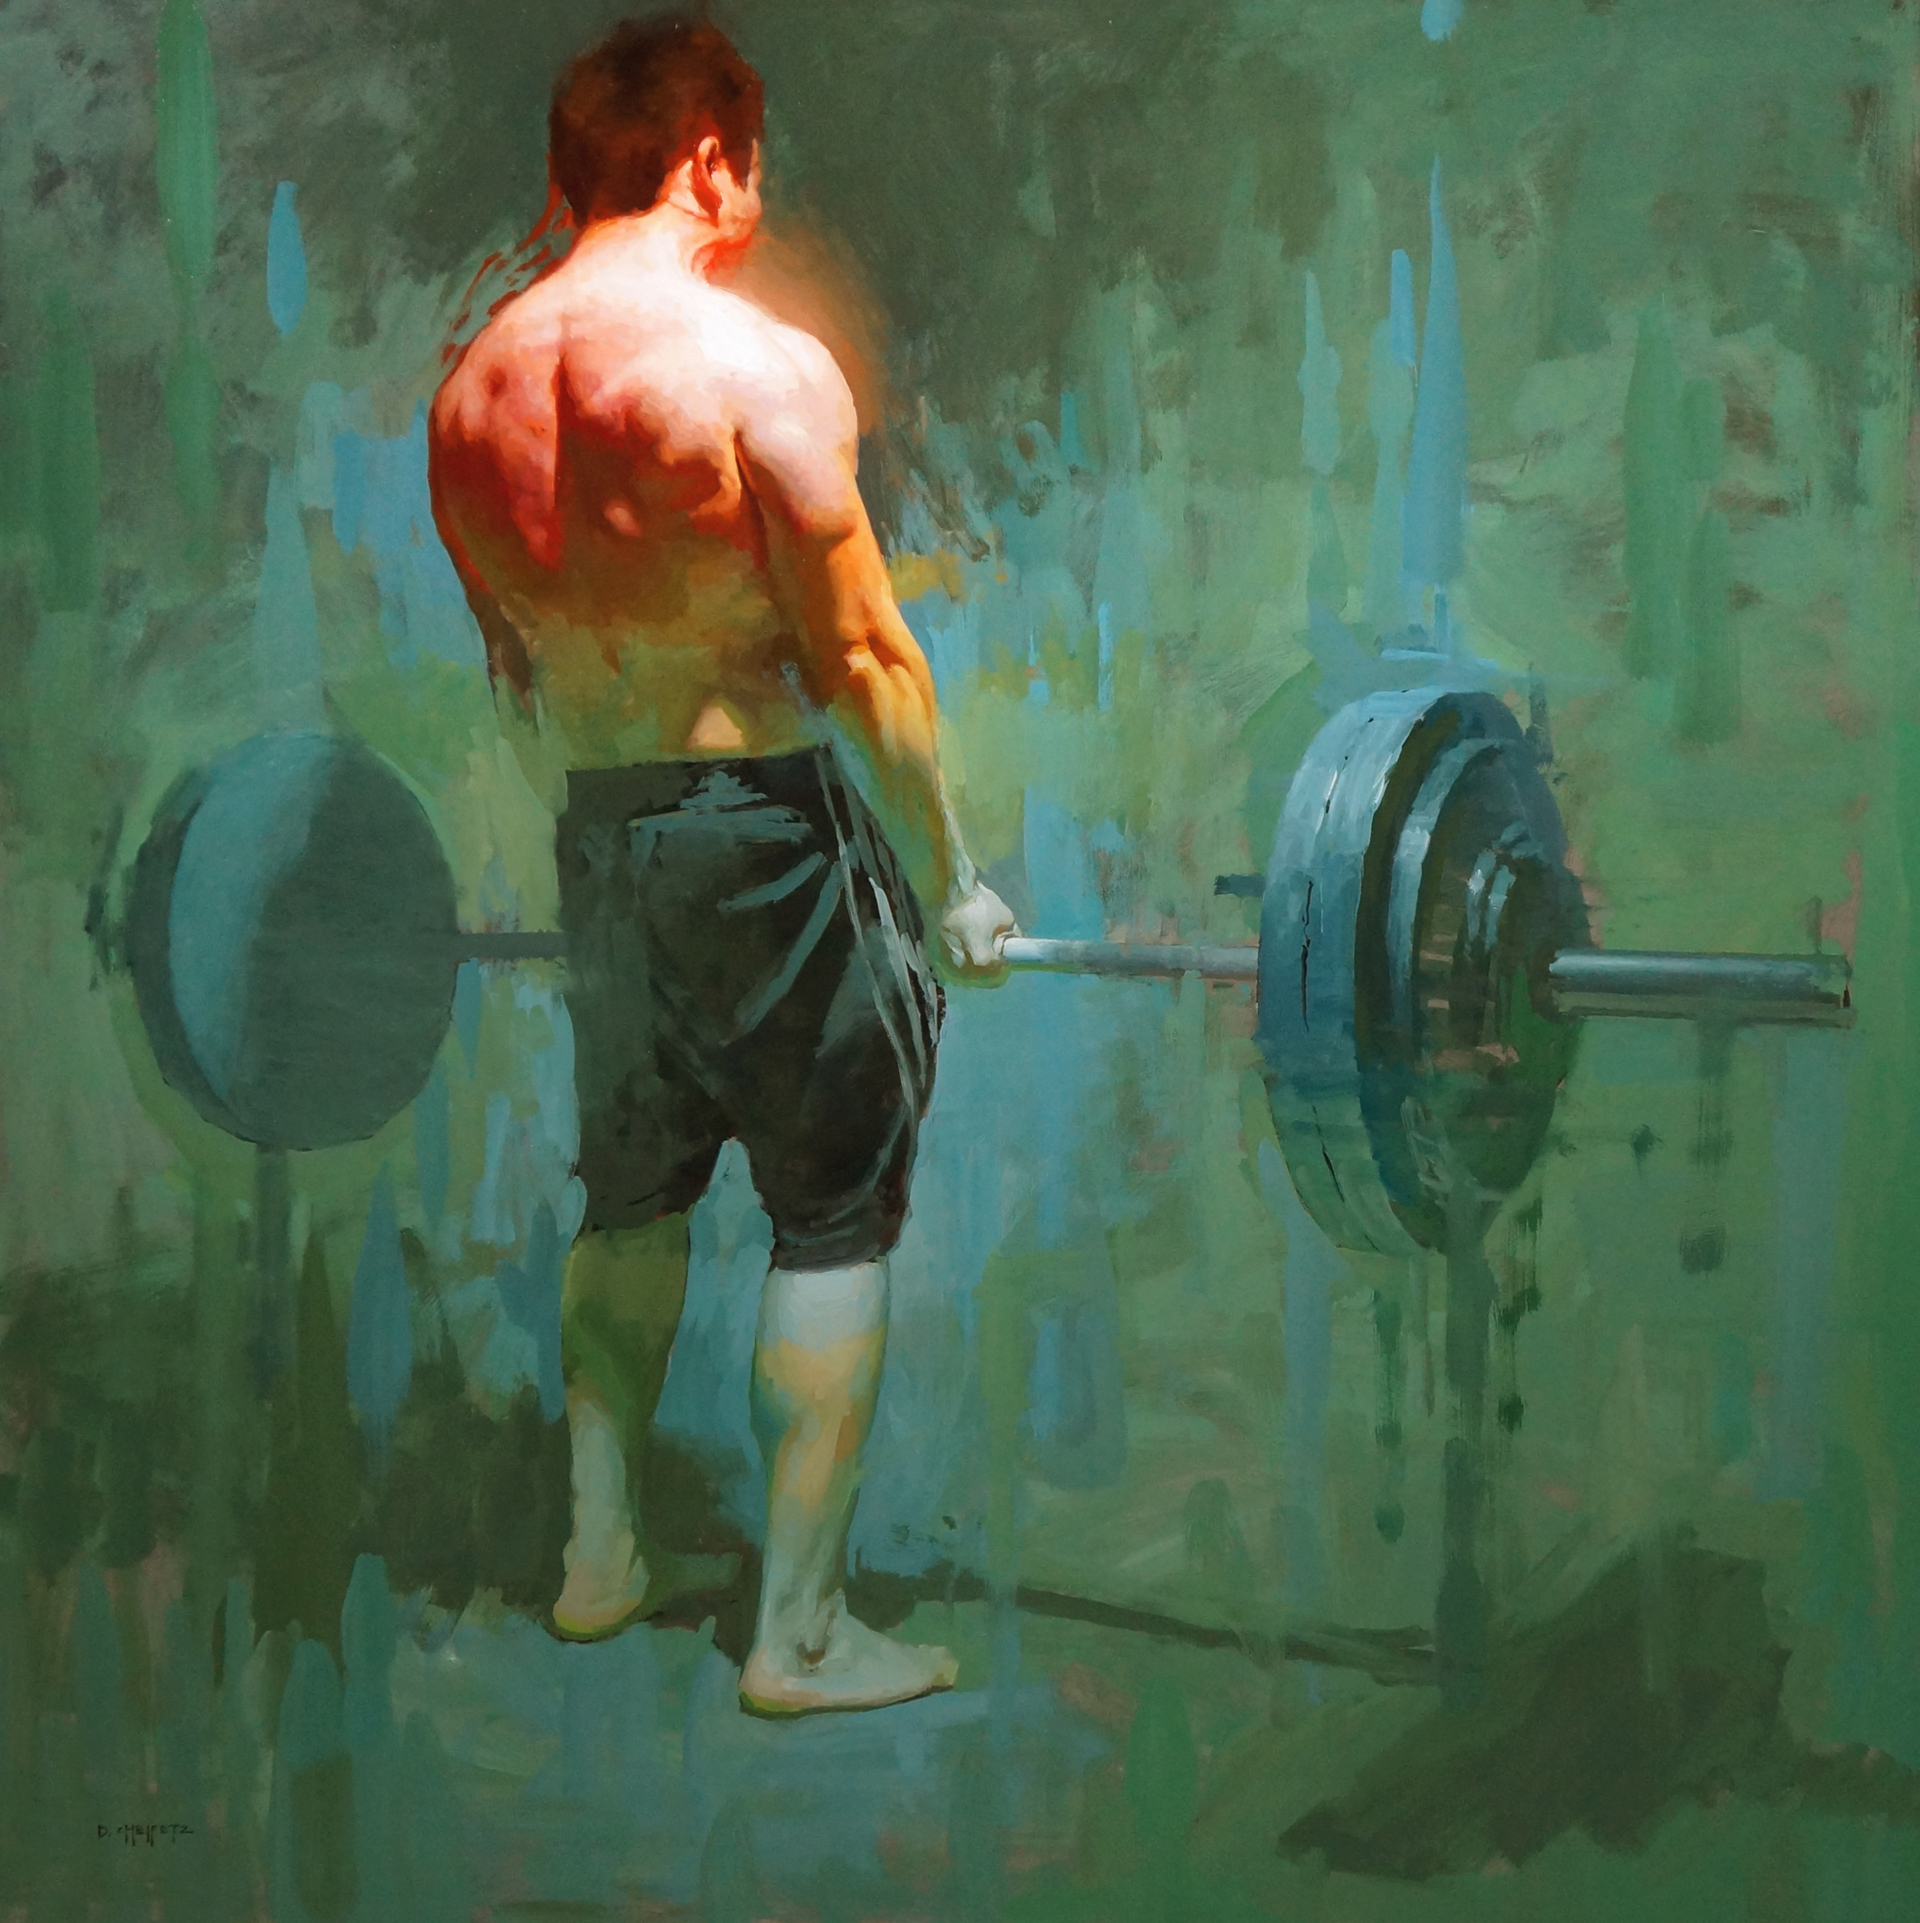 The Deadlift by David Cheifetz